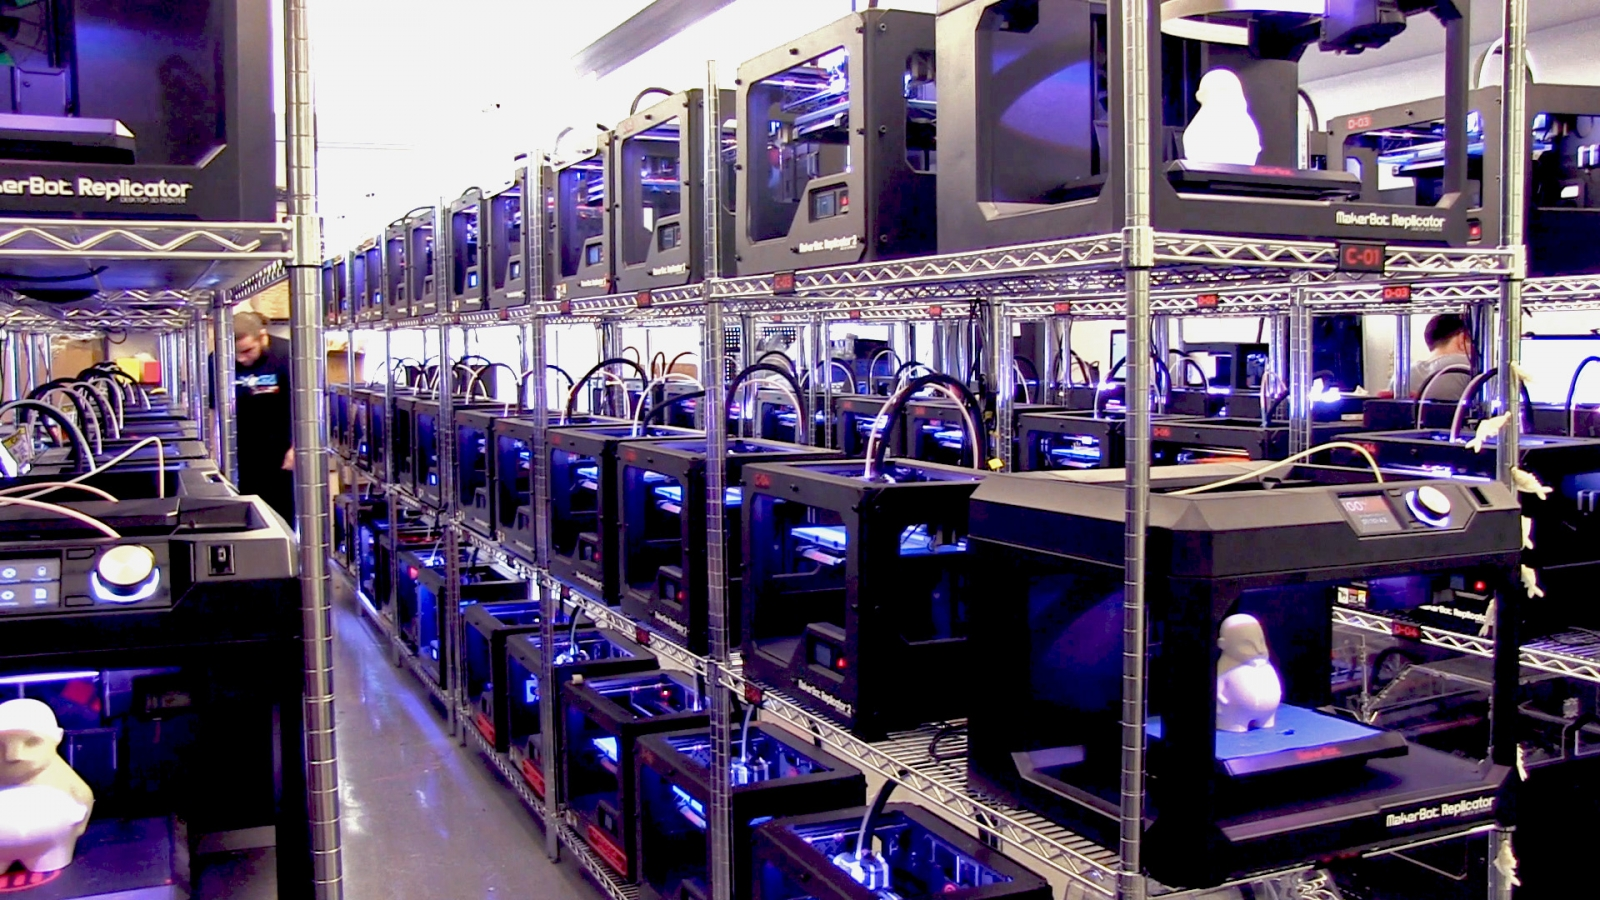 A 3D printer enthusiast's dream: A sea of MakerBot 3D printers working away at the Innovation Center